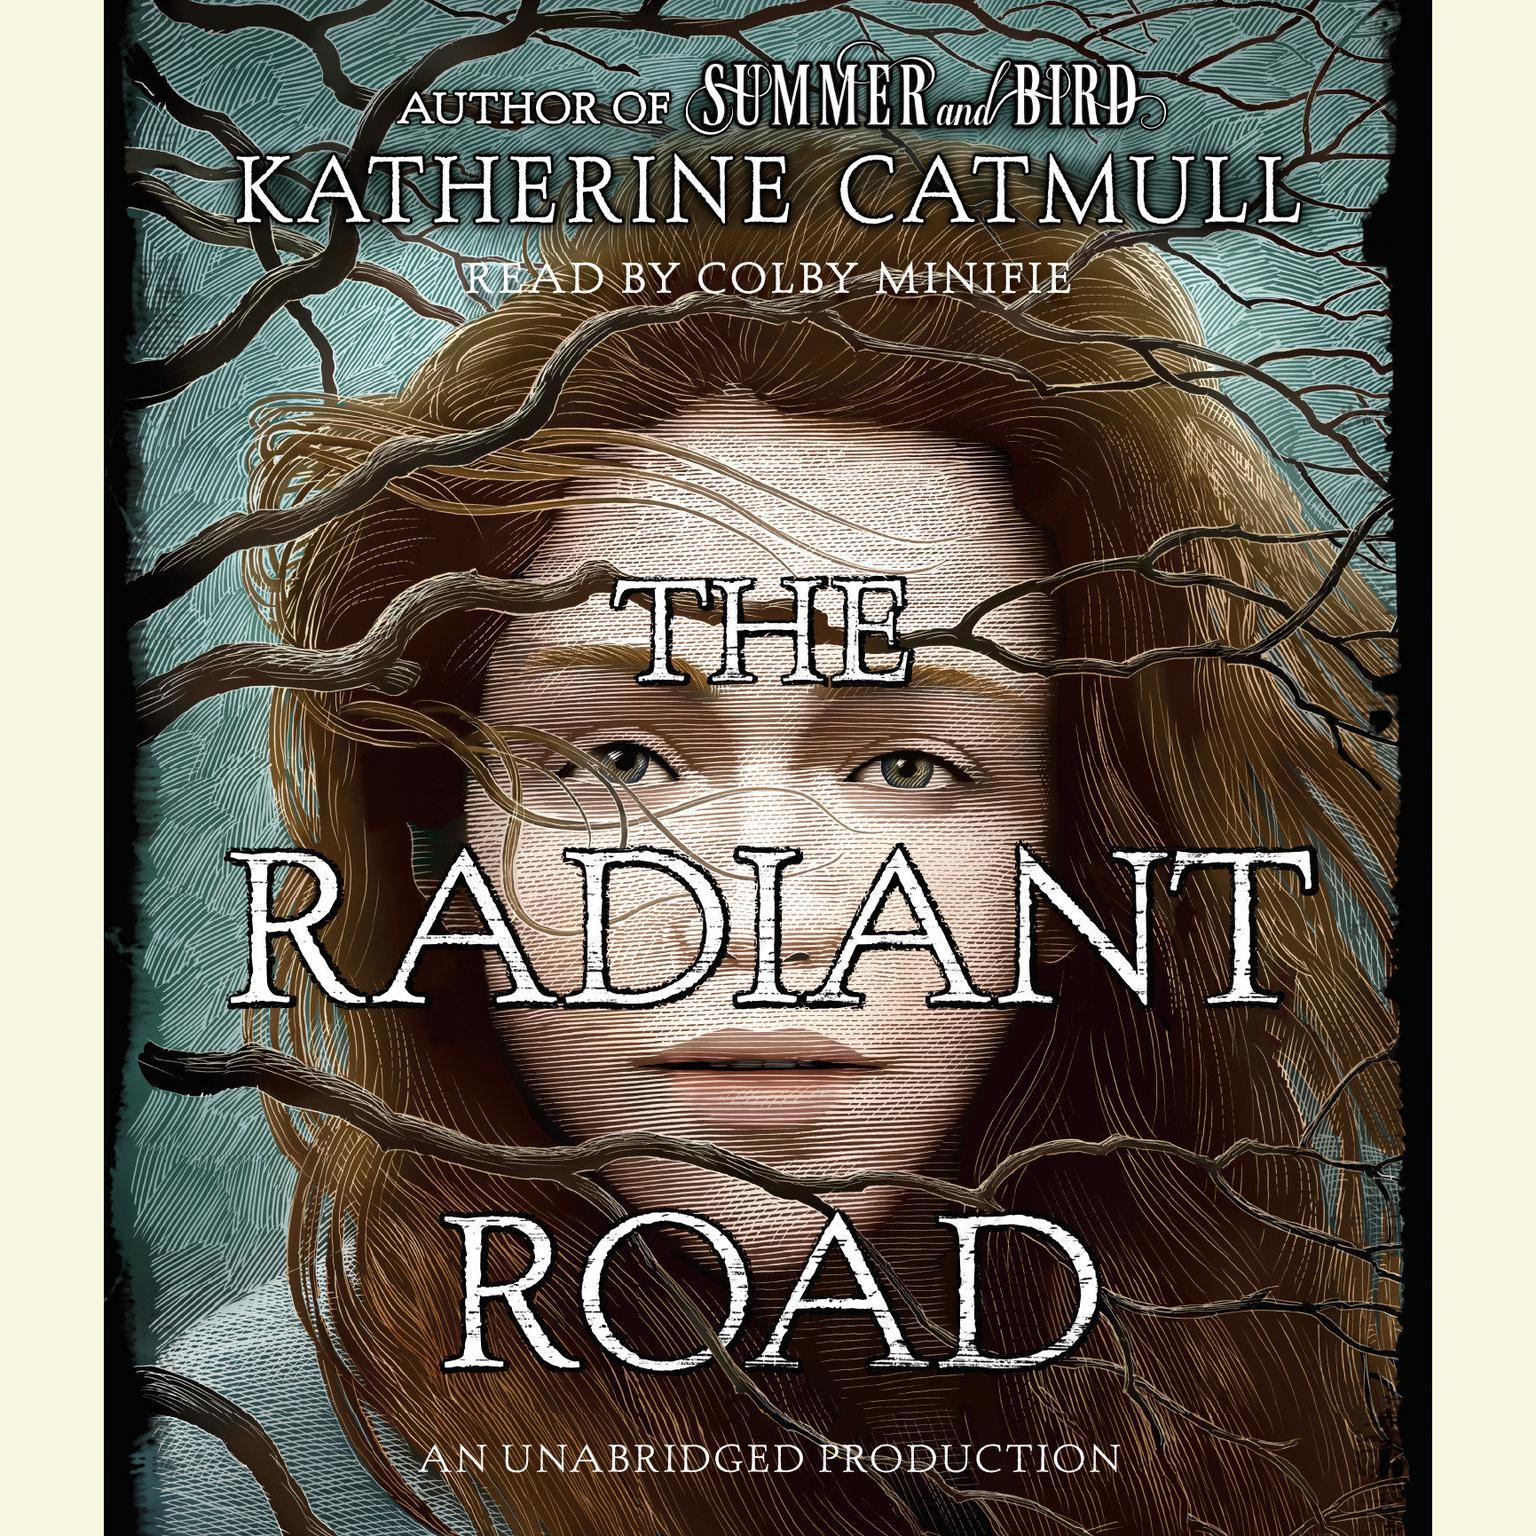 Printable The Radiant Road Audiobook Cover Art